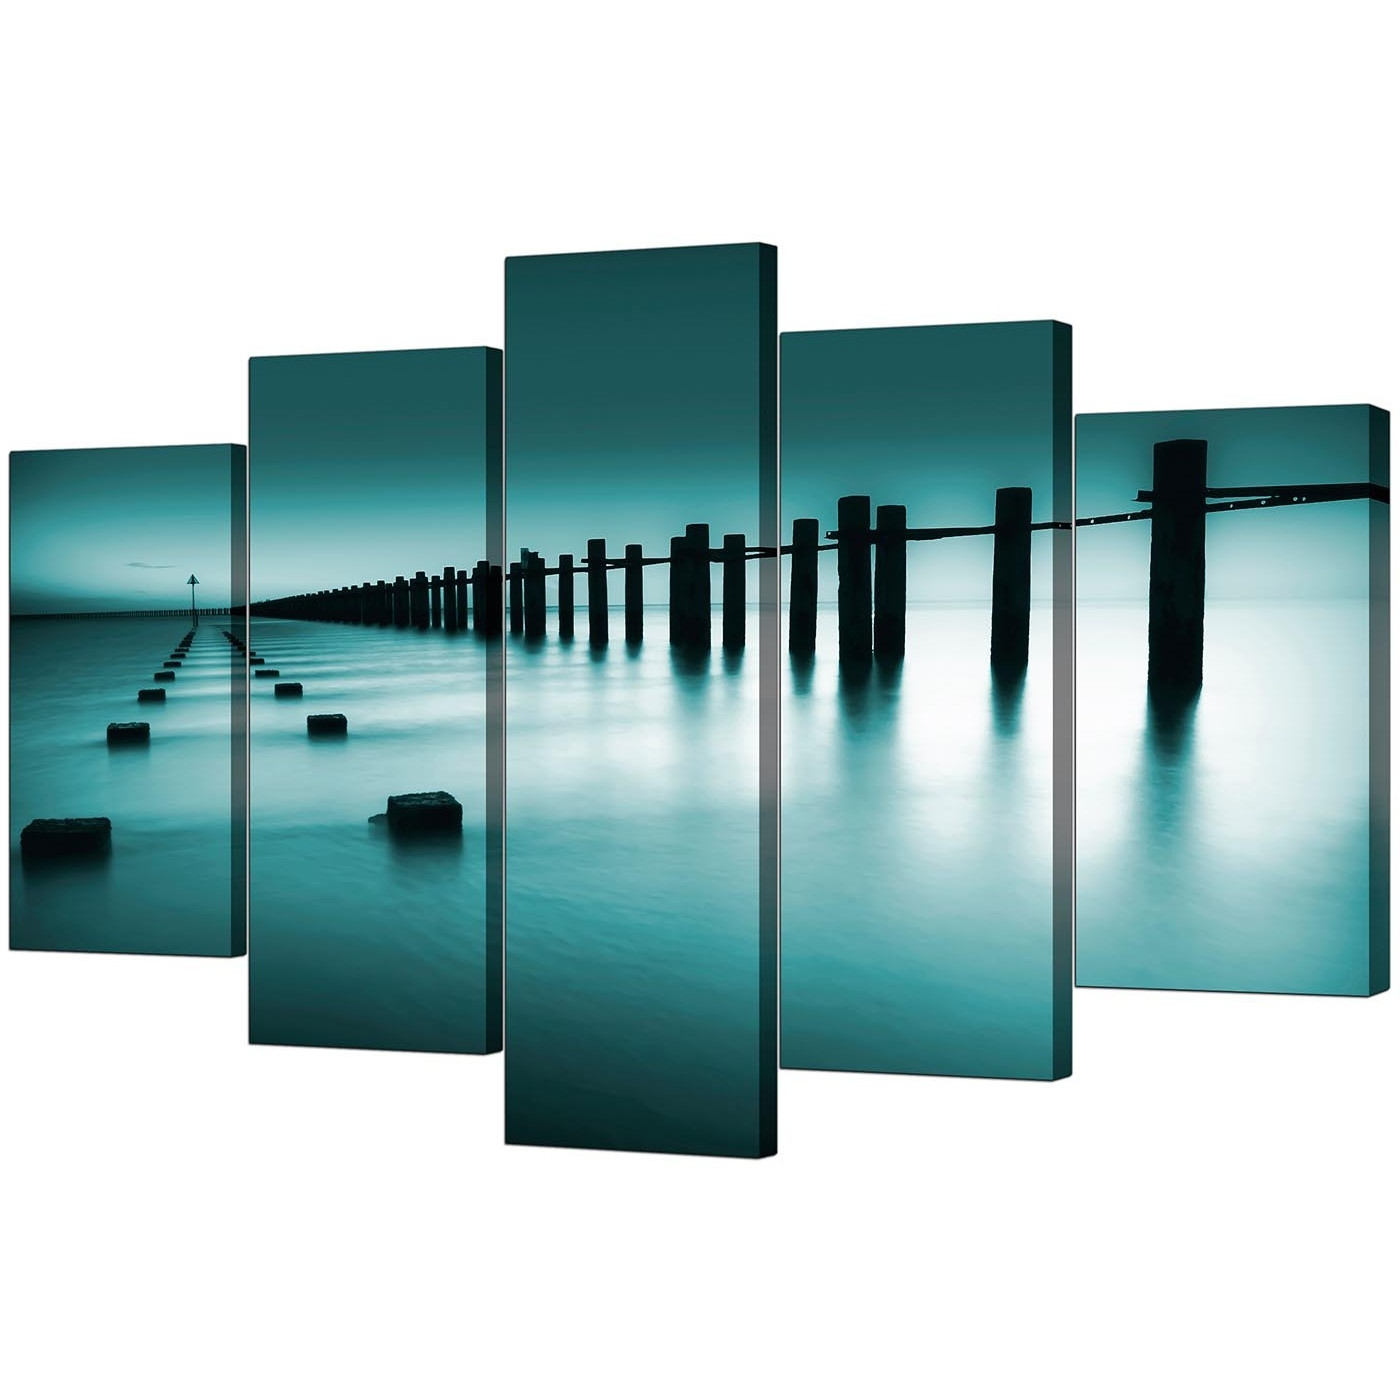 Newest Extra Large Sea Canvas Wall Art Five Panel In Teal For Large Teal Wall Art (View 4 of 15)